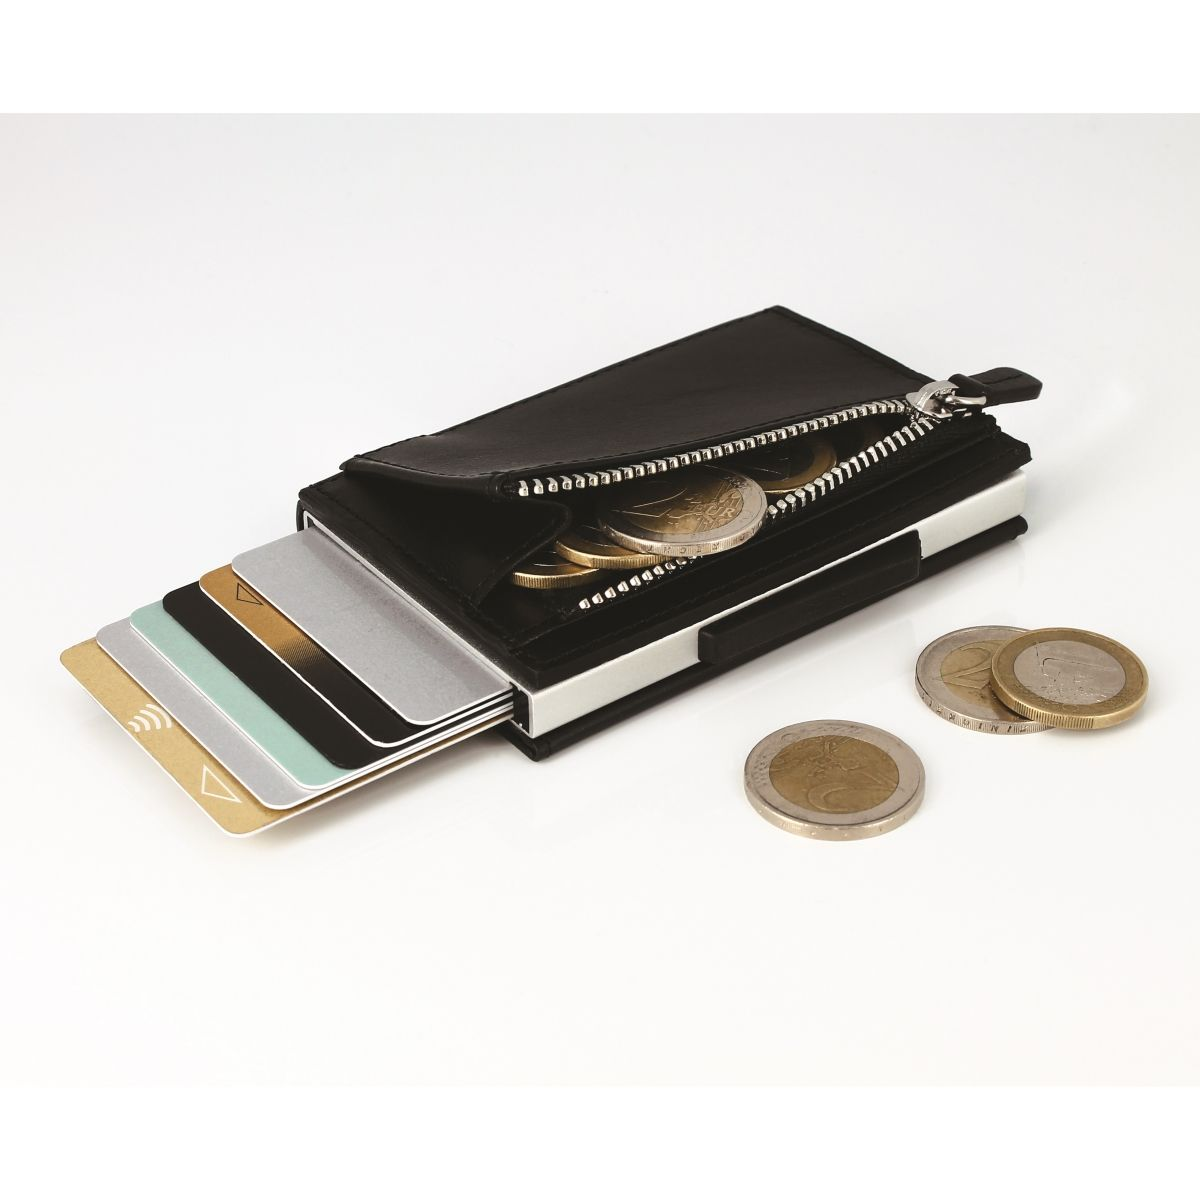 Cascade Card Case Wallet With Zipper - Black